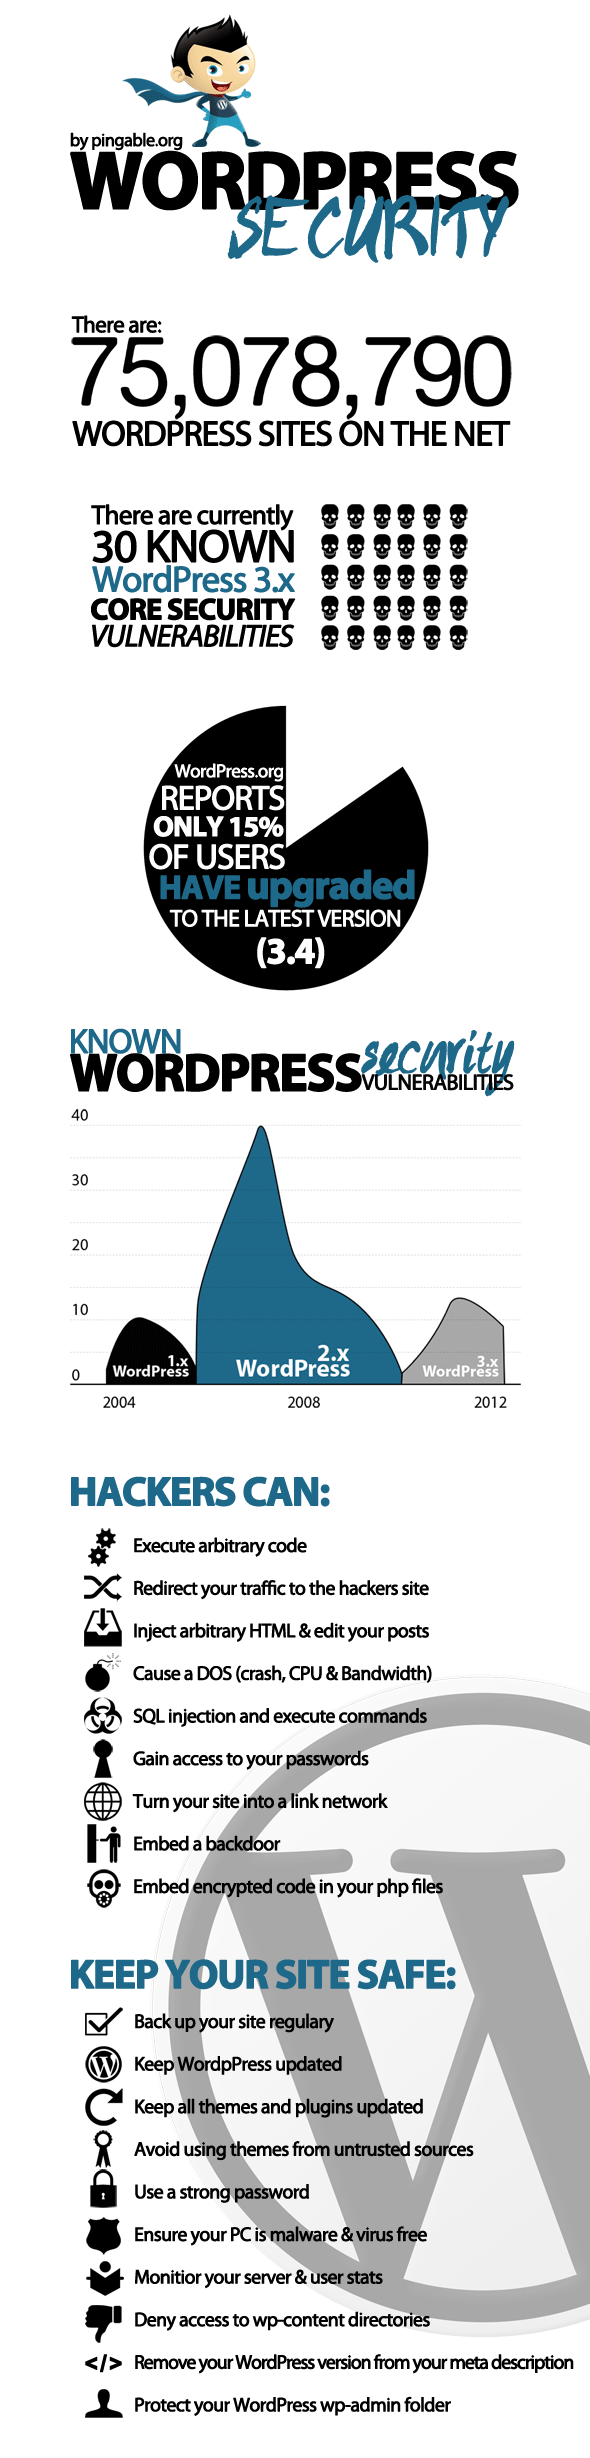 Free WordPress security infographic small